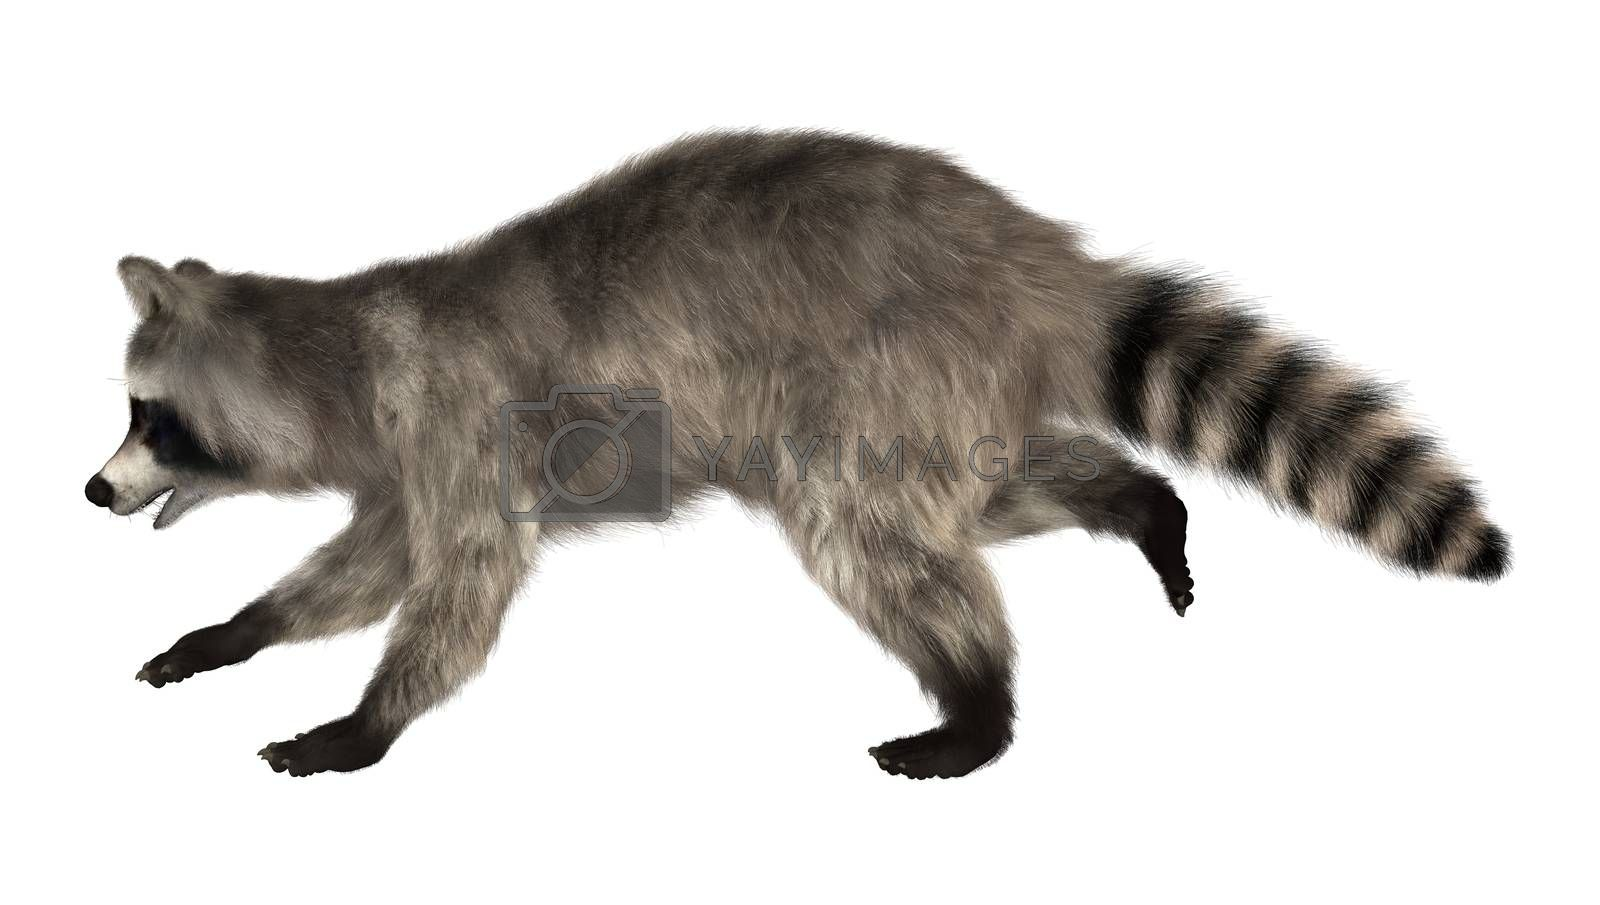 3D digital render of a raccoon running iisolated on white background